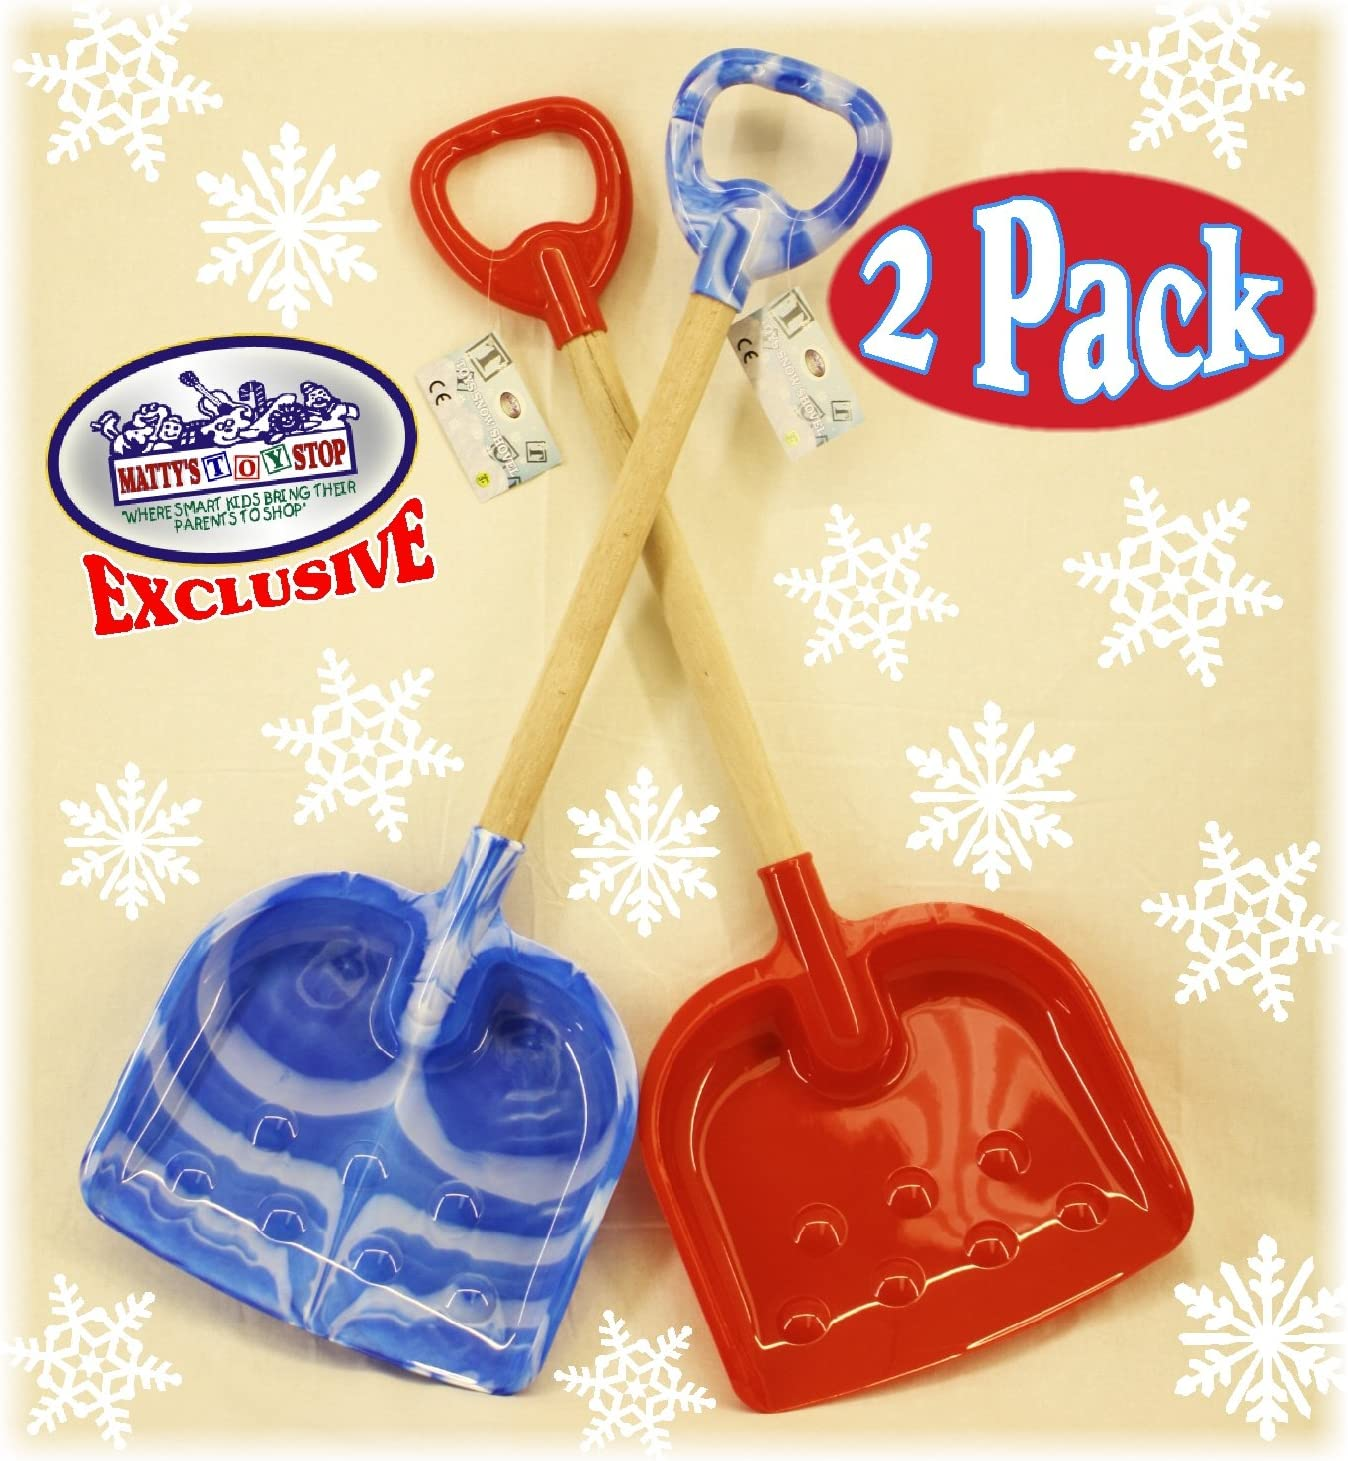 4 Pack Homeware Red, Blue, Green /& Yellow Swirl Mattys Toy Stop 10 Plastic Sand Shovels for Kids Complete Gift Set Party Bundle